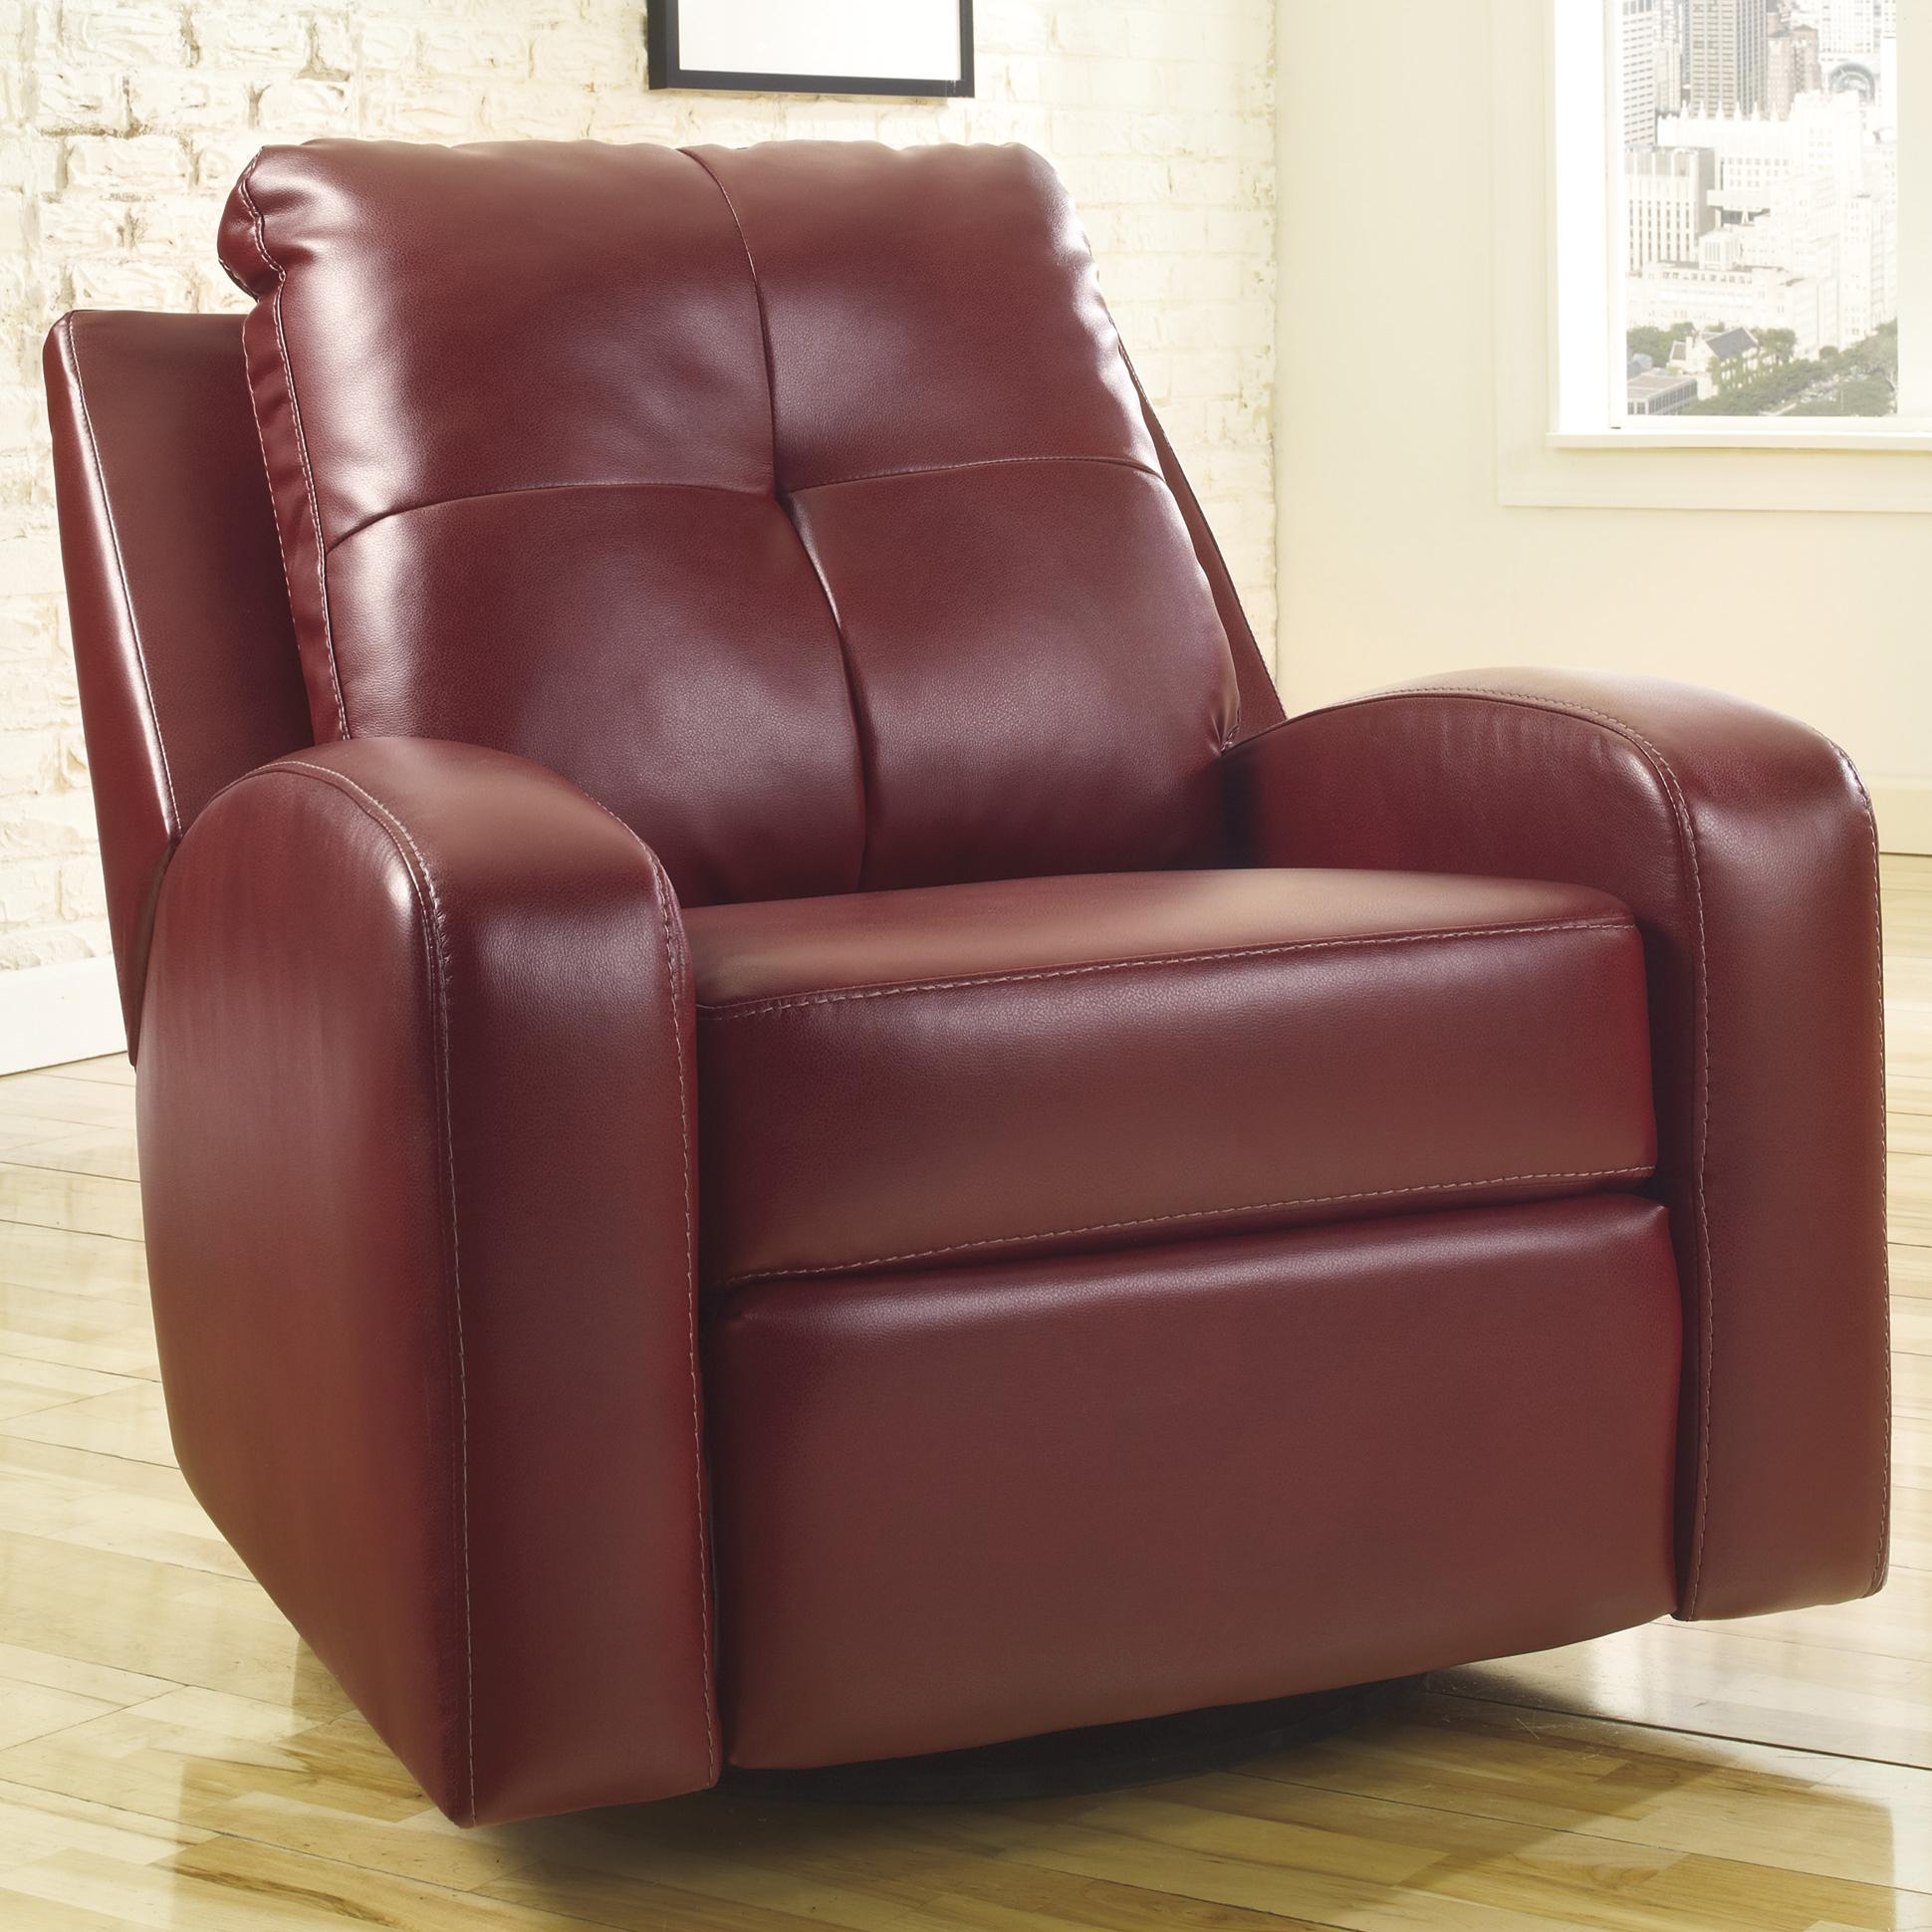 Signature Design by Ashley Mannix DuraBlend - Red Swivel Glider Recliner - Item Number: 2140261